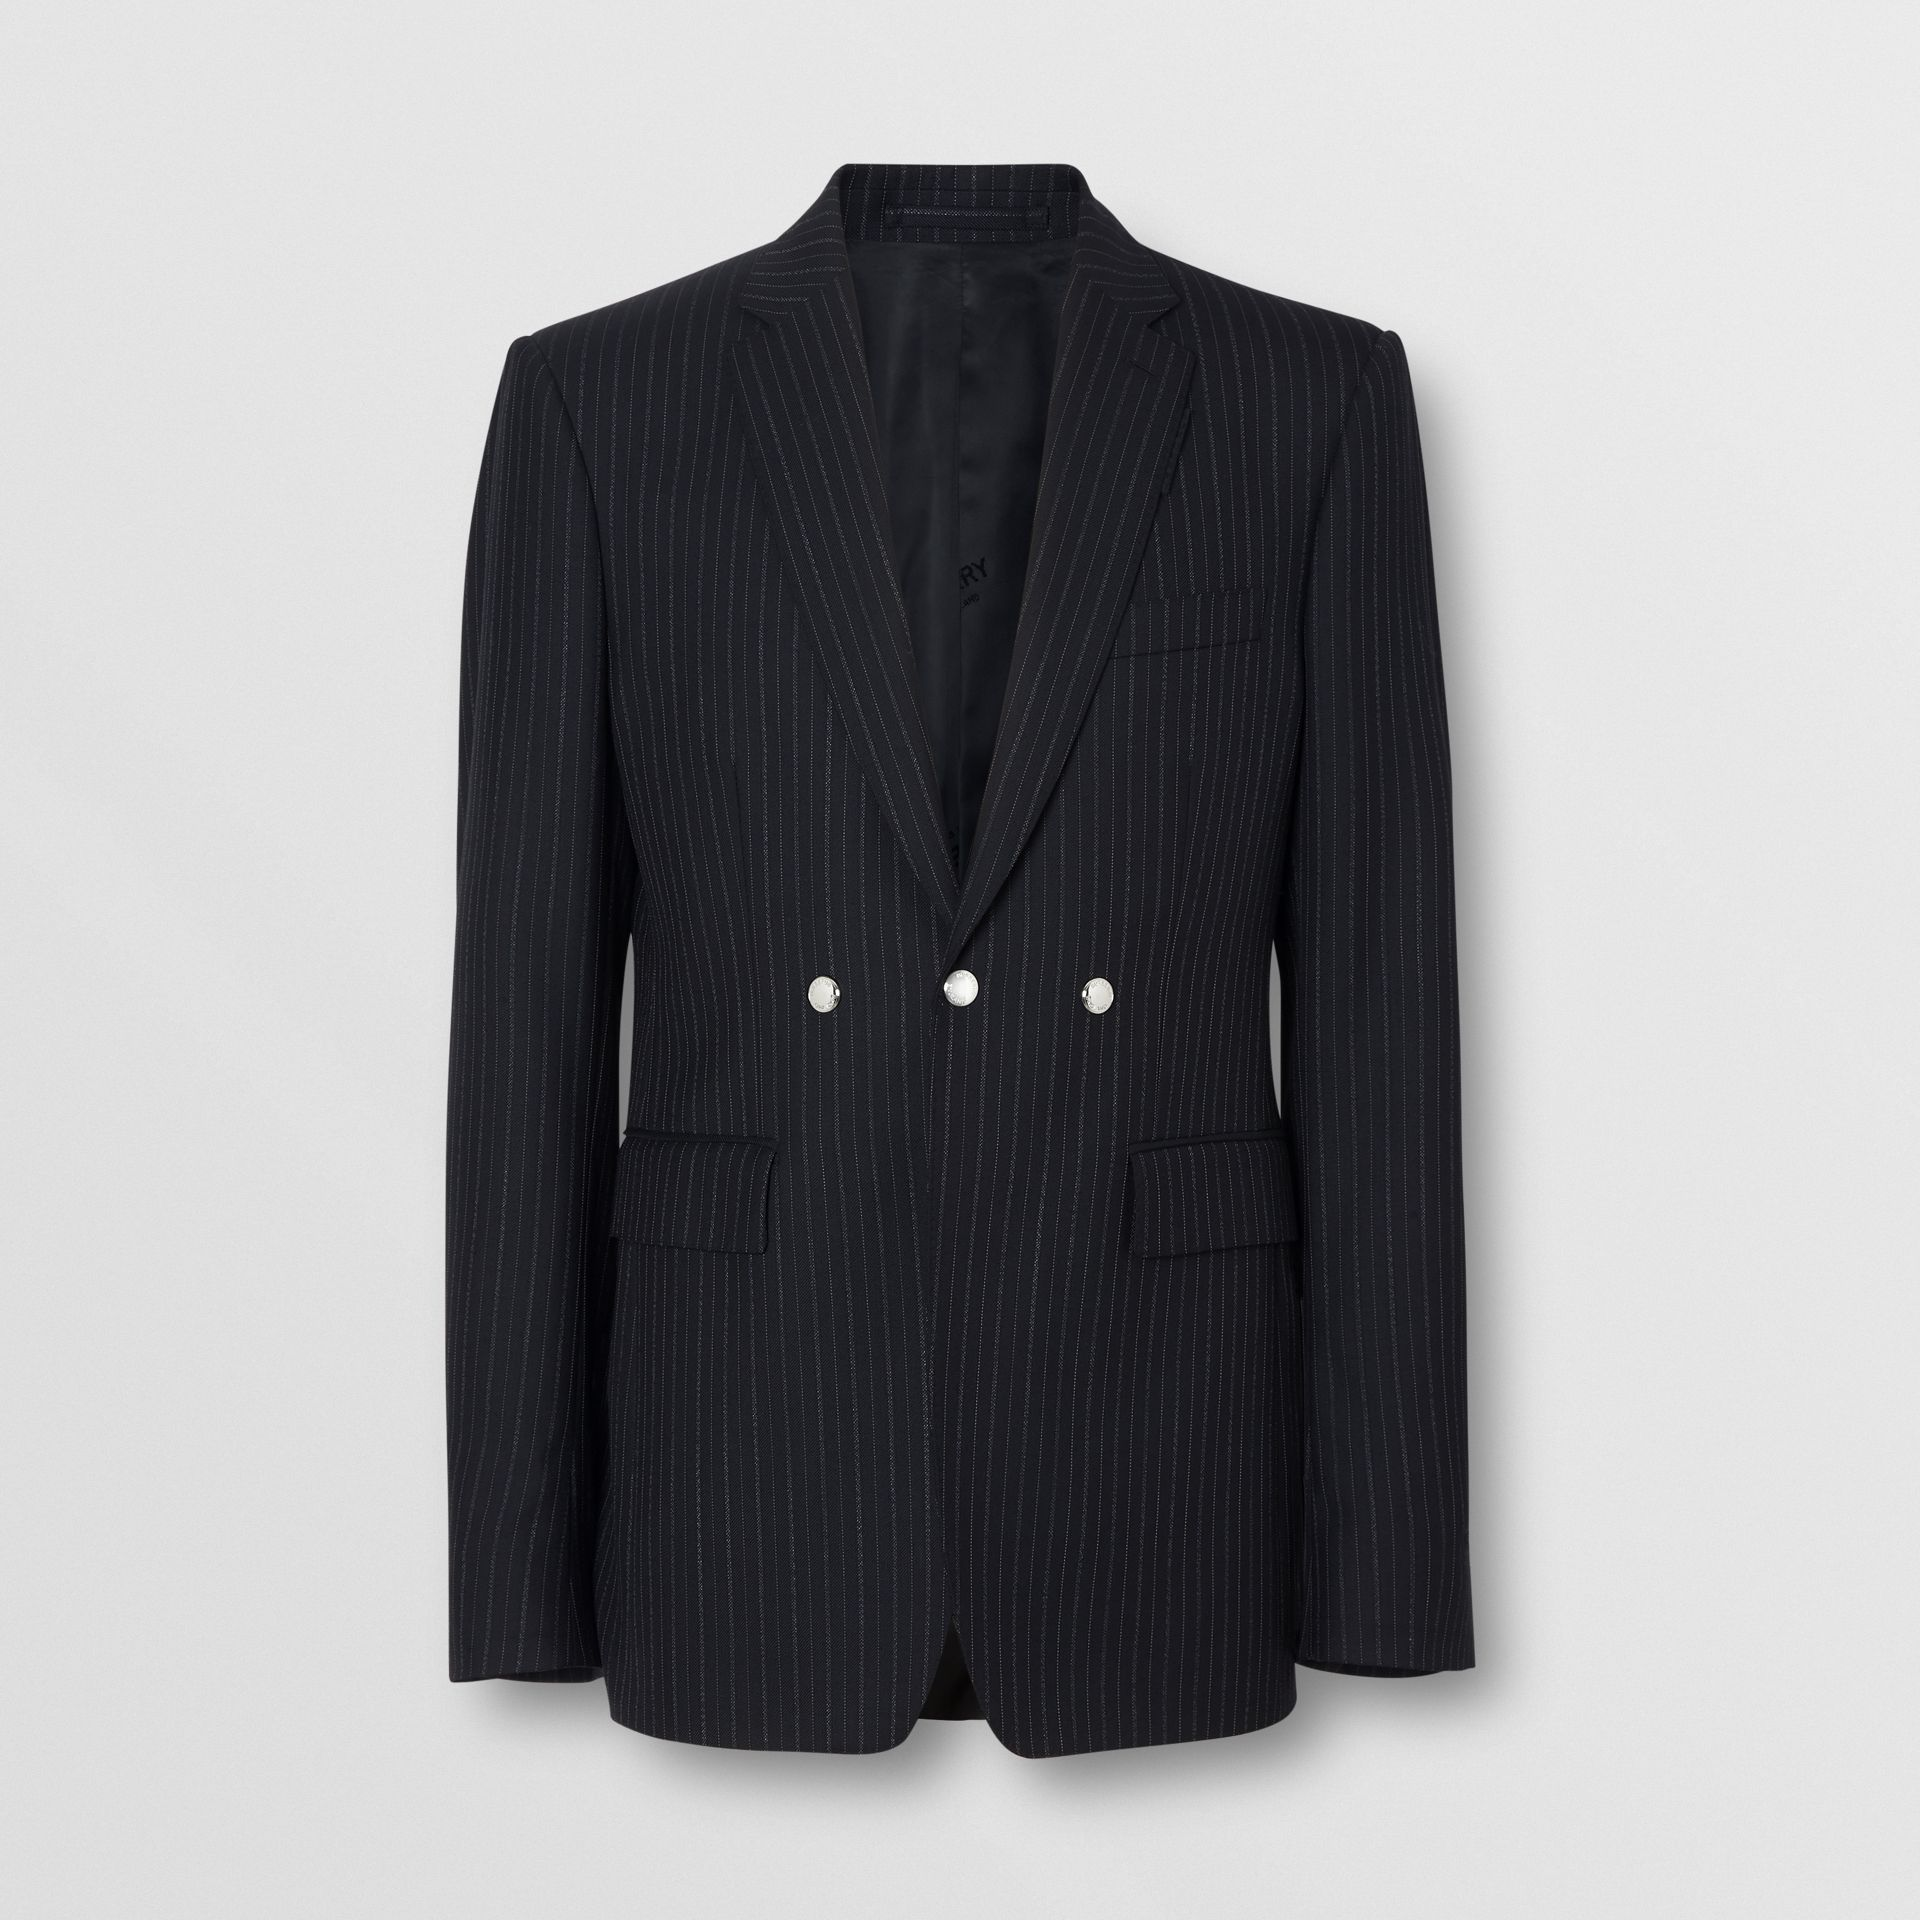 English Fit Triple Stud Pinstriped Wool Tailored Jacket in Black - Men | Burberry - gallery image 3